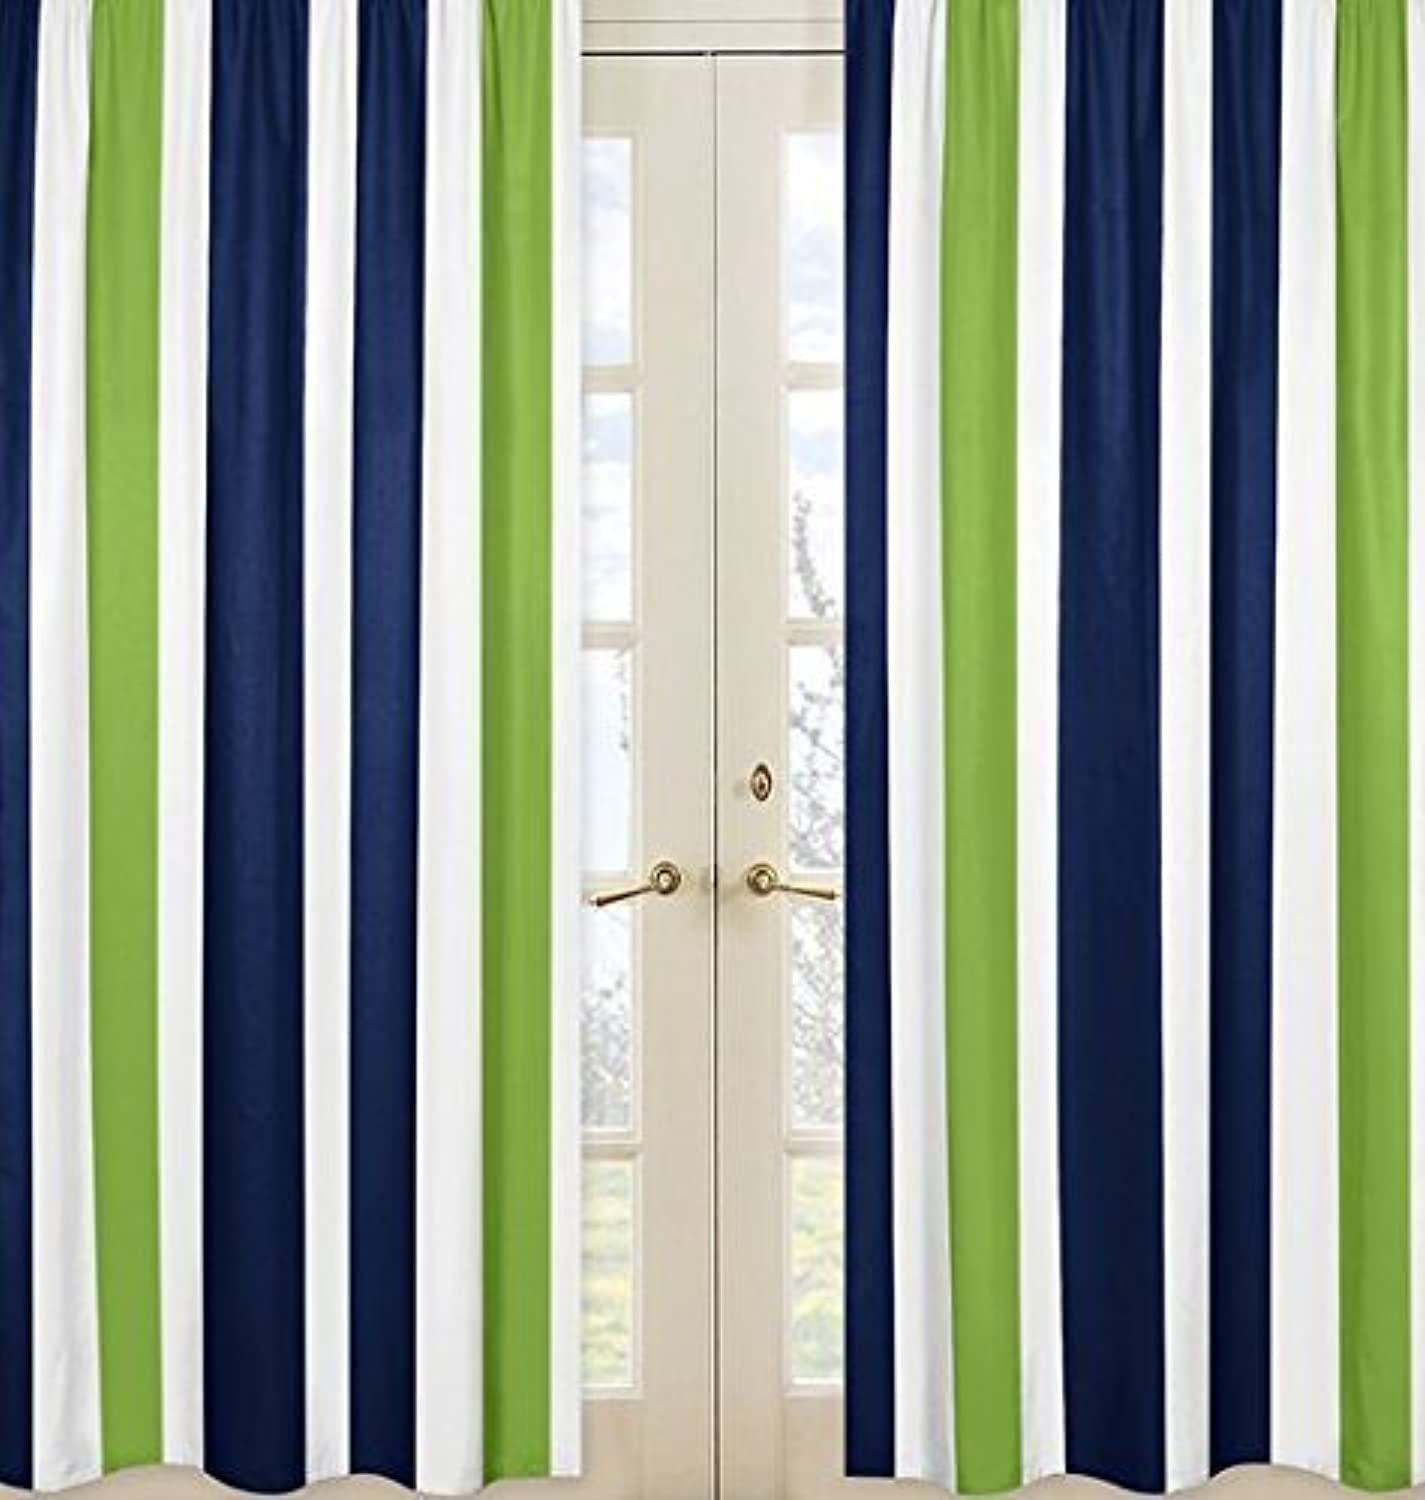 Sweet Jojo Designs 2-Piece Navy bluee, Lime Green and White Window Treatment Panels for Stripe Collection